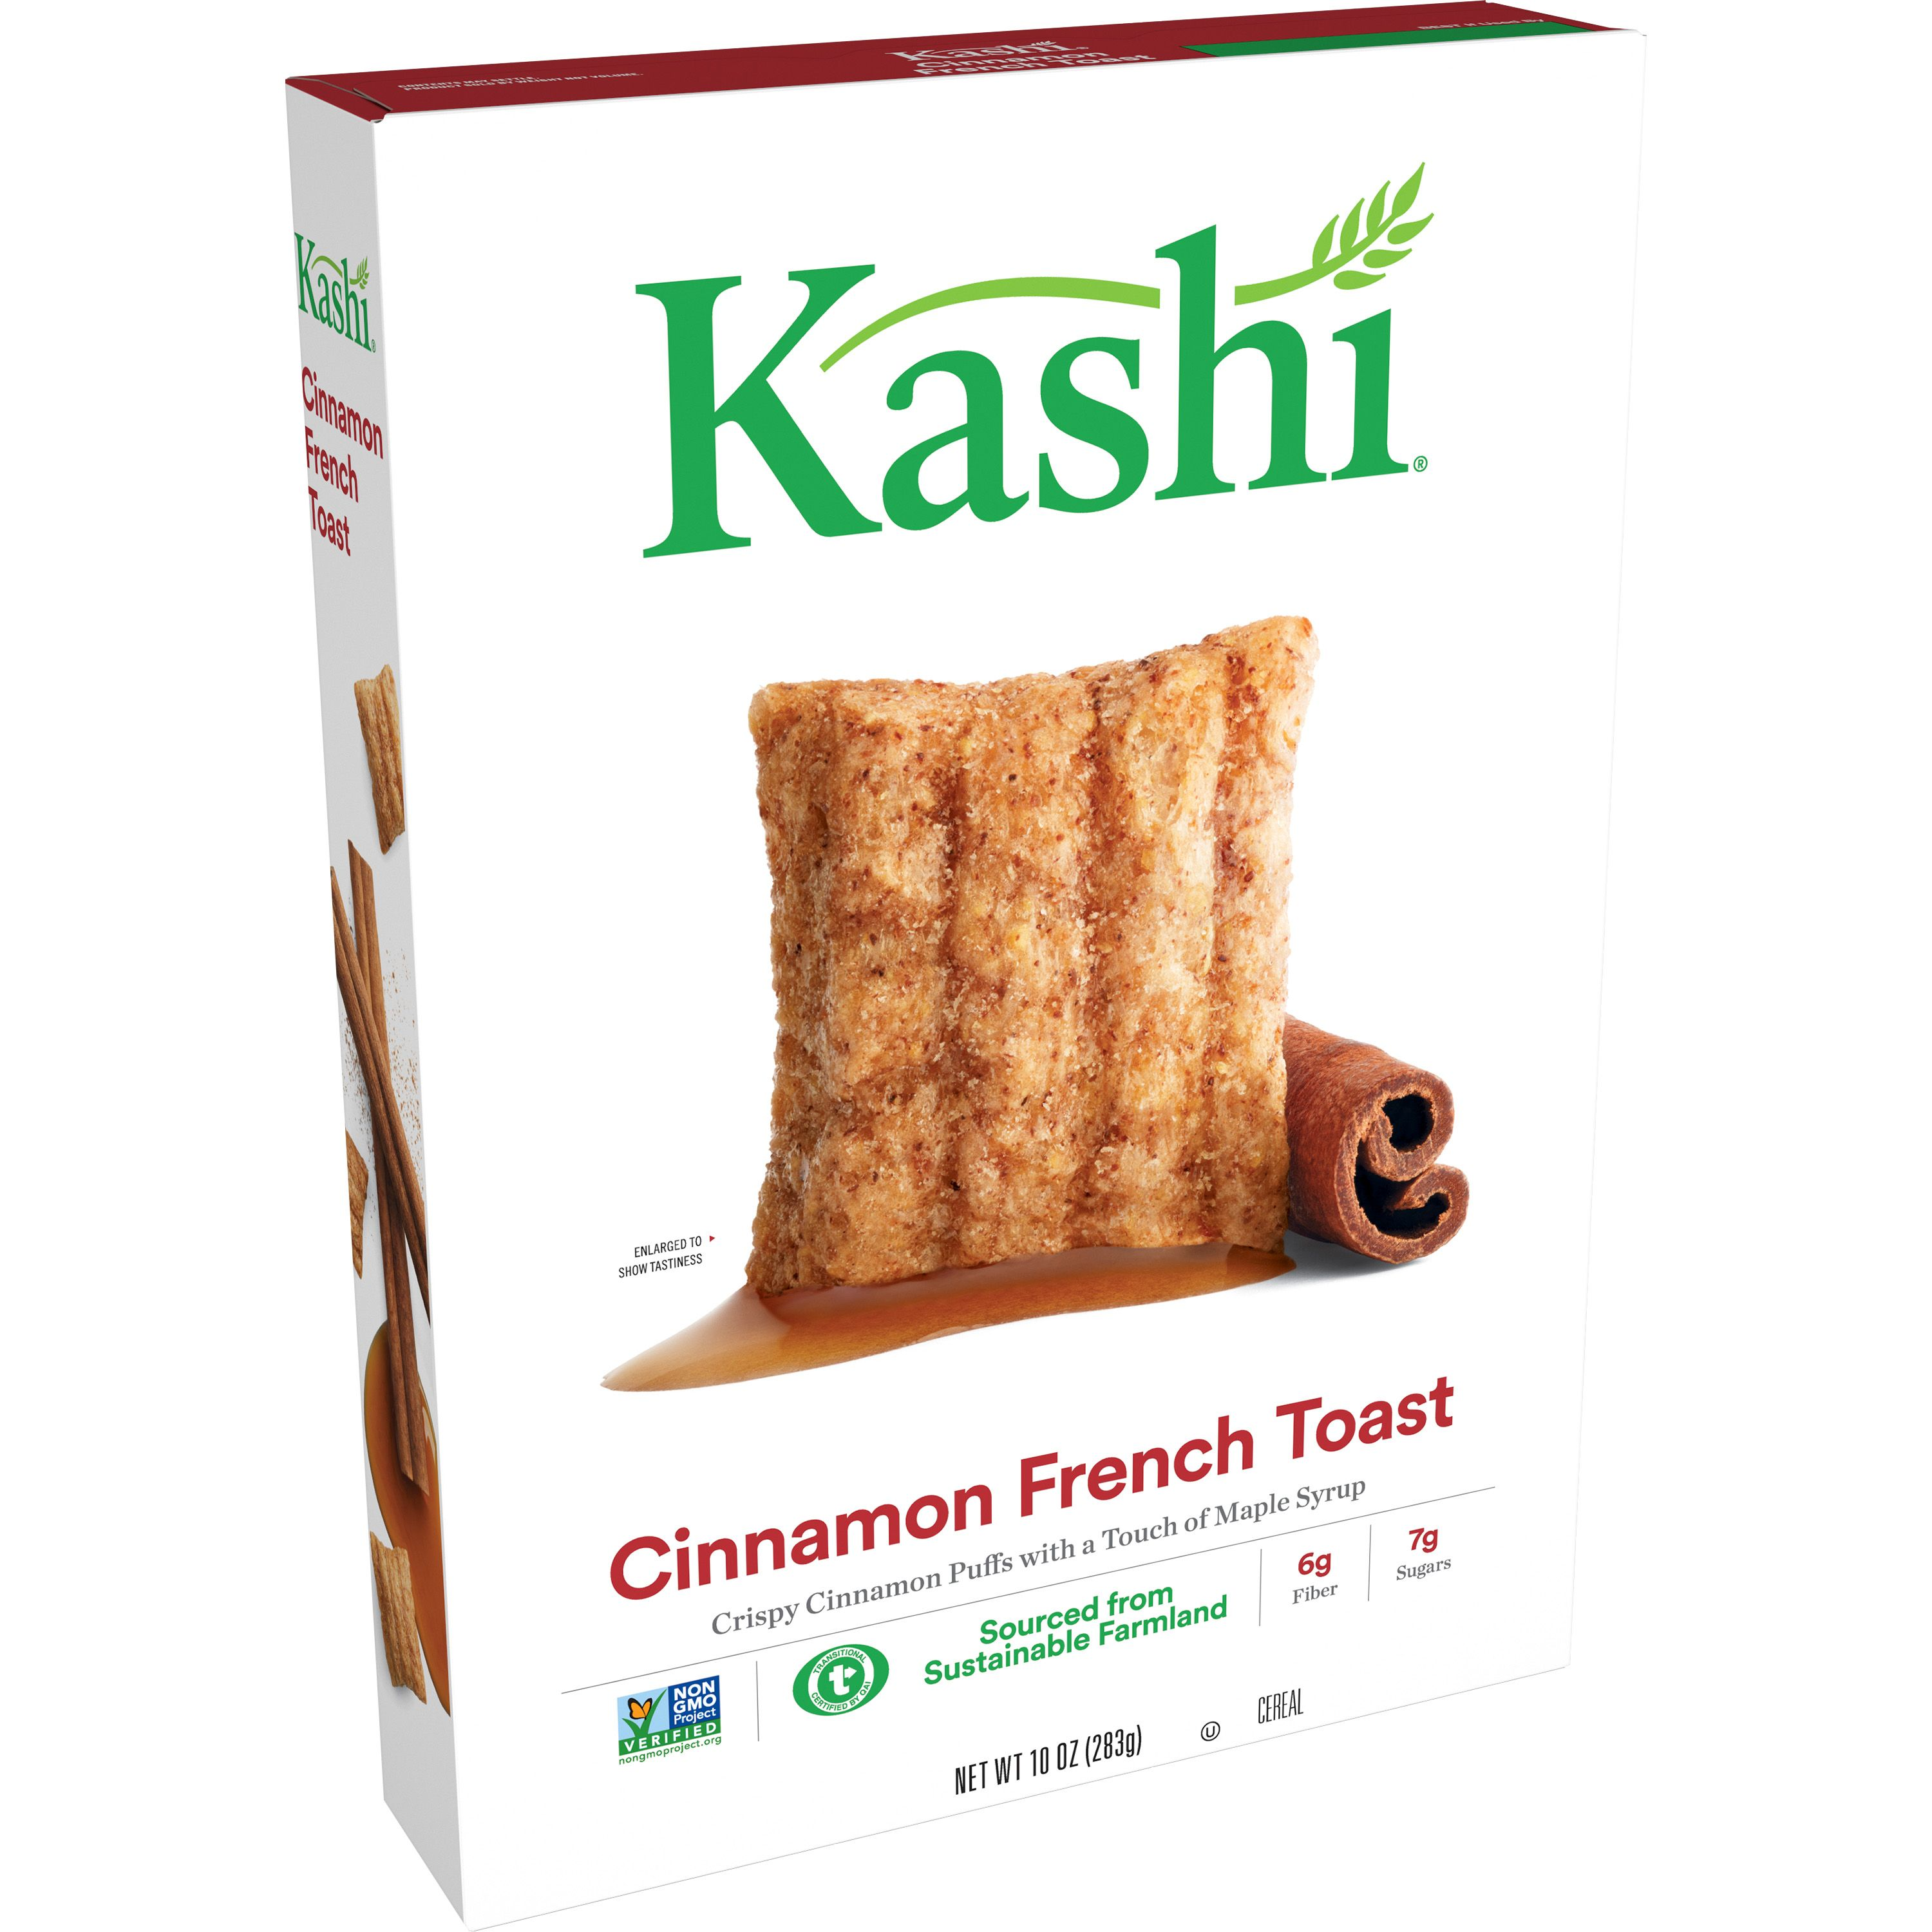 kashi cinnamon french toast, healthy breakfast cereal